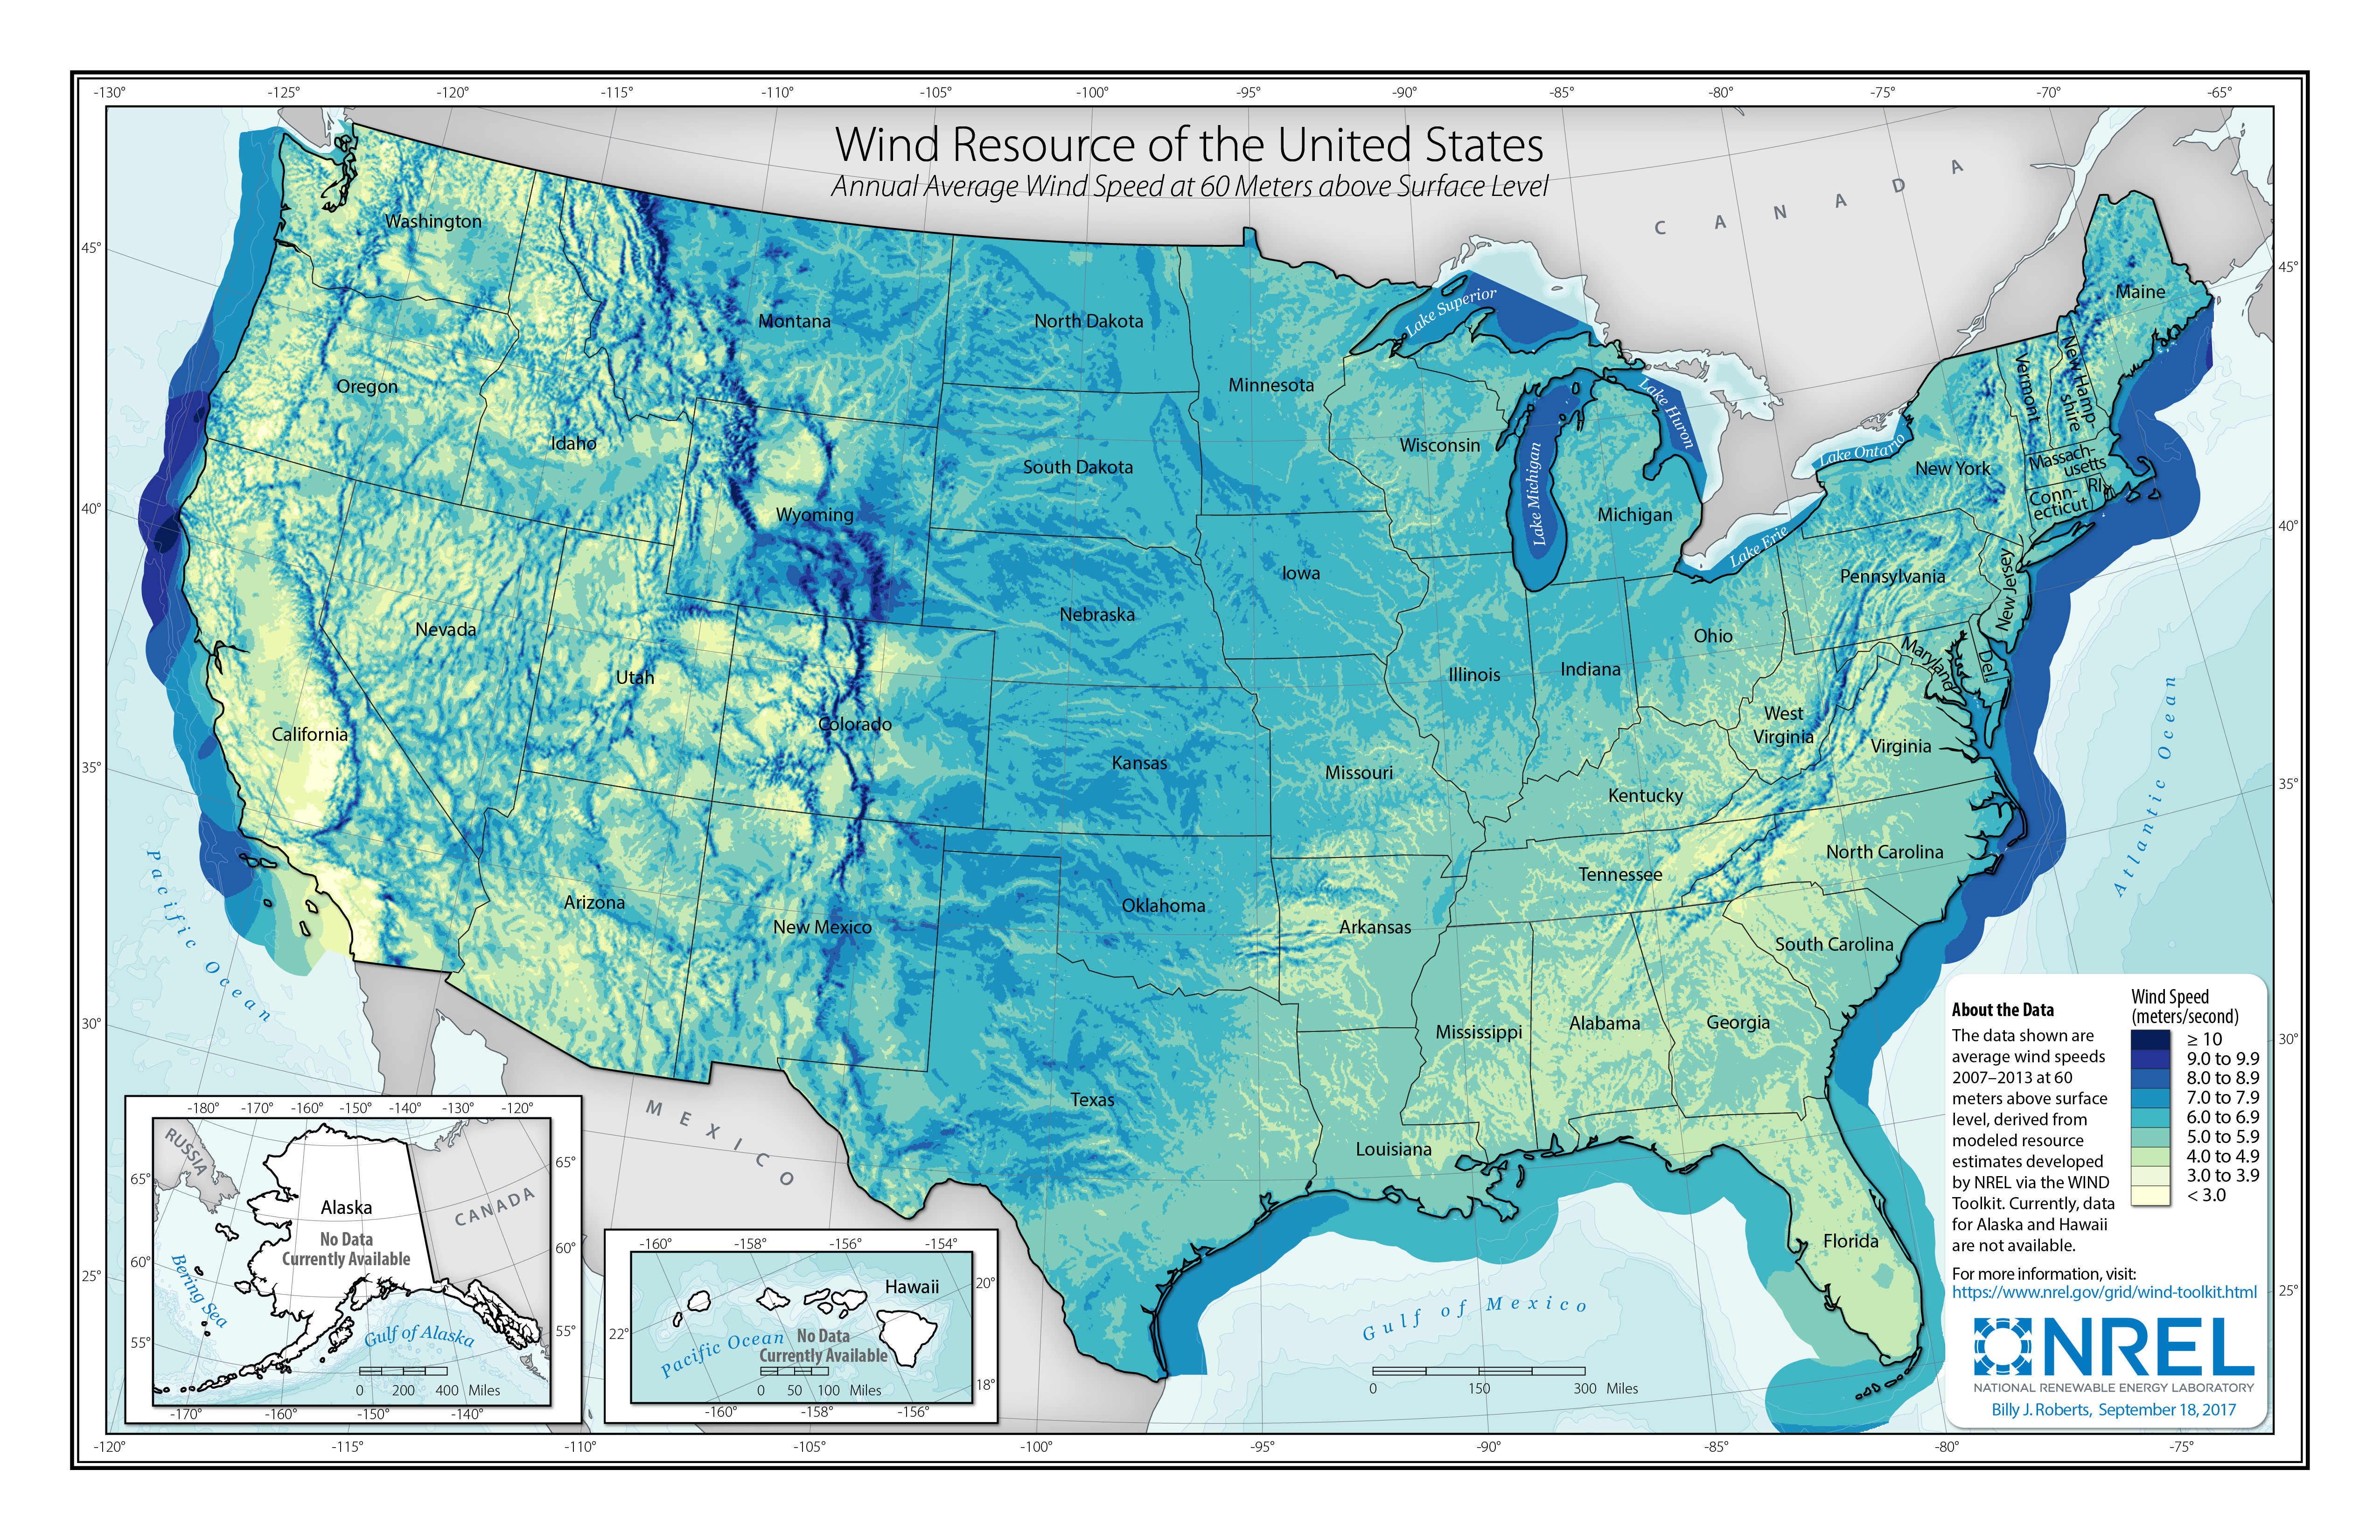 Map Of Average Wind Speeds In The Us Wind Resource Data, Tools, and Maps | Geospatial Data Science | NREL